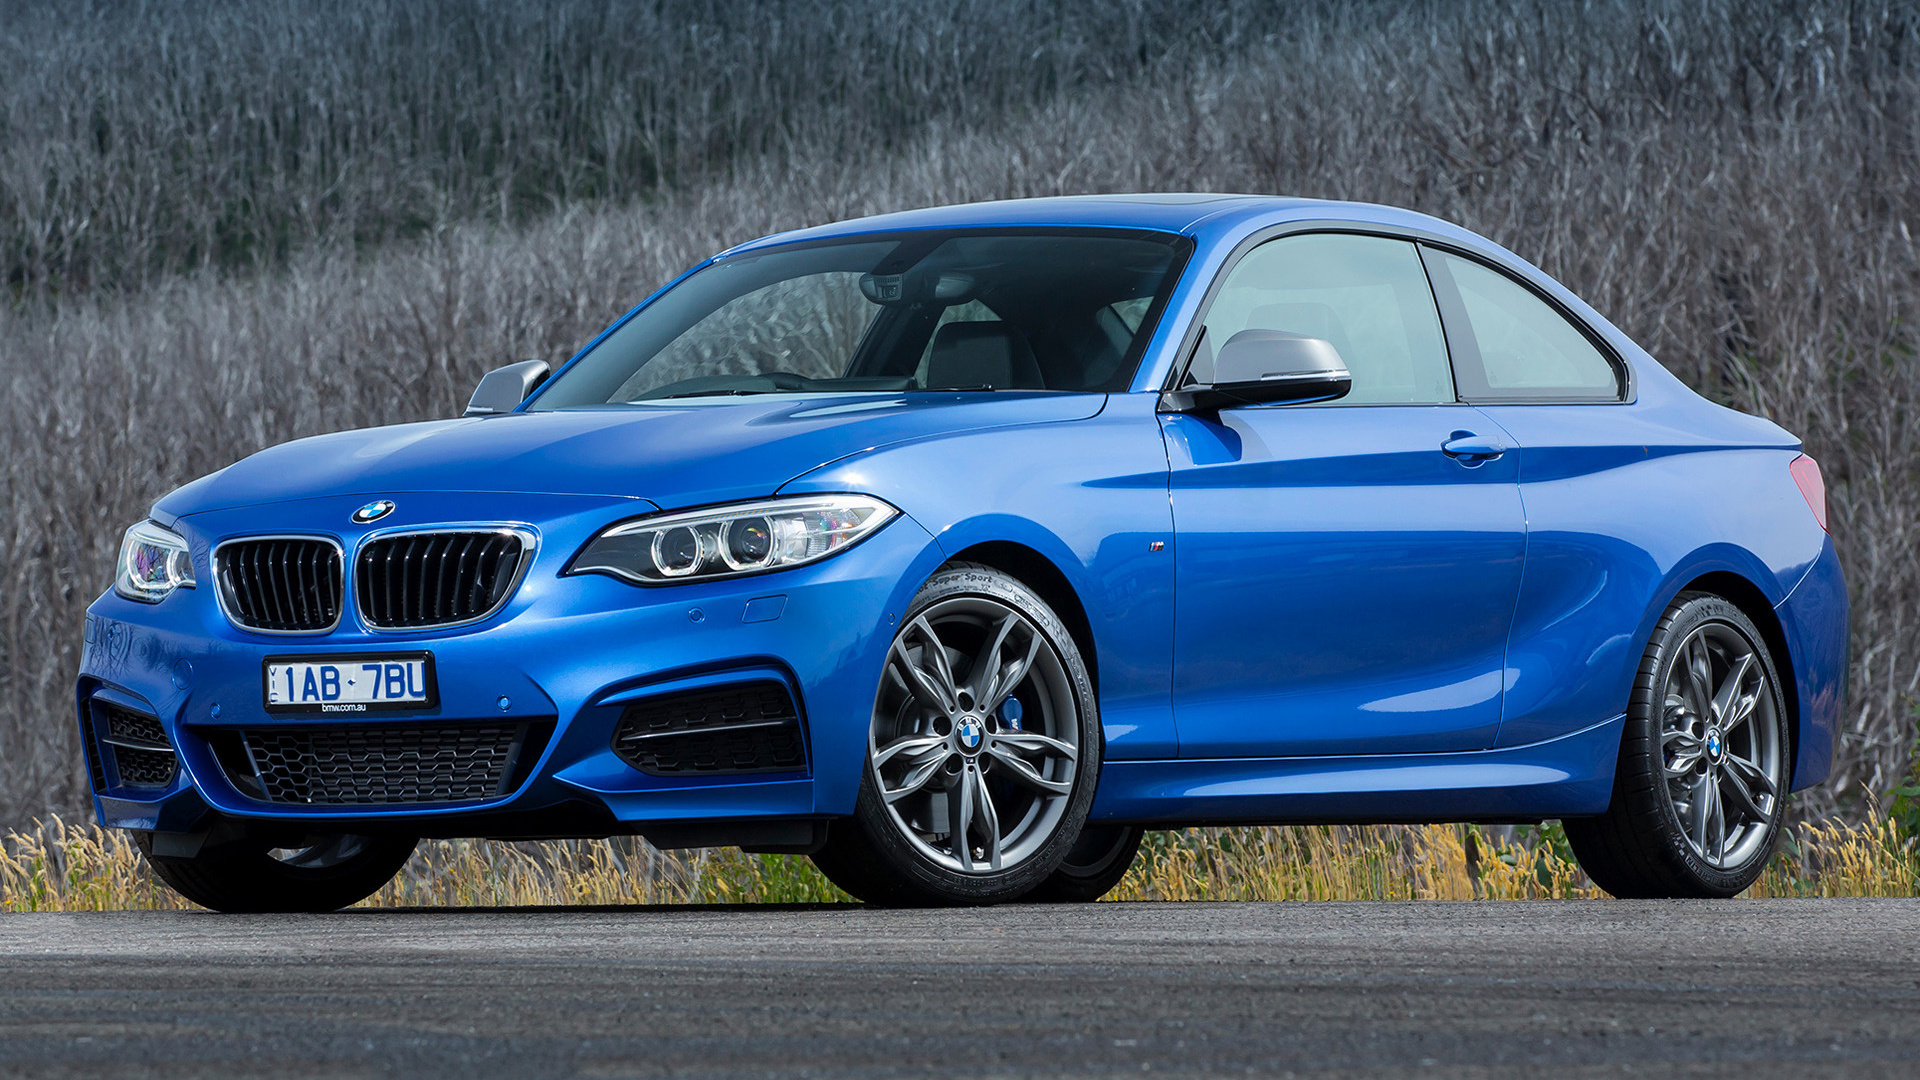 2014 bmw m235i coupe au wallpapers and hd images car. Black Bedroom Furniture Sets. Home Design Ideas